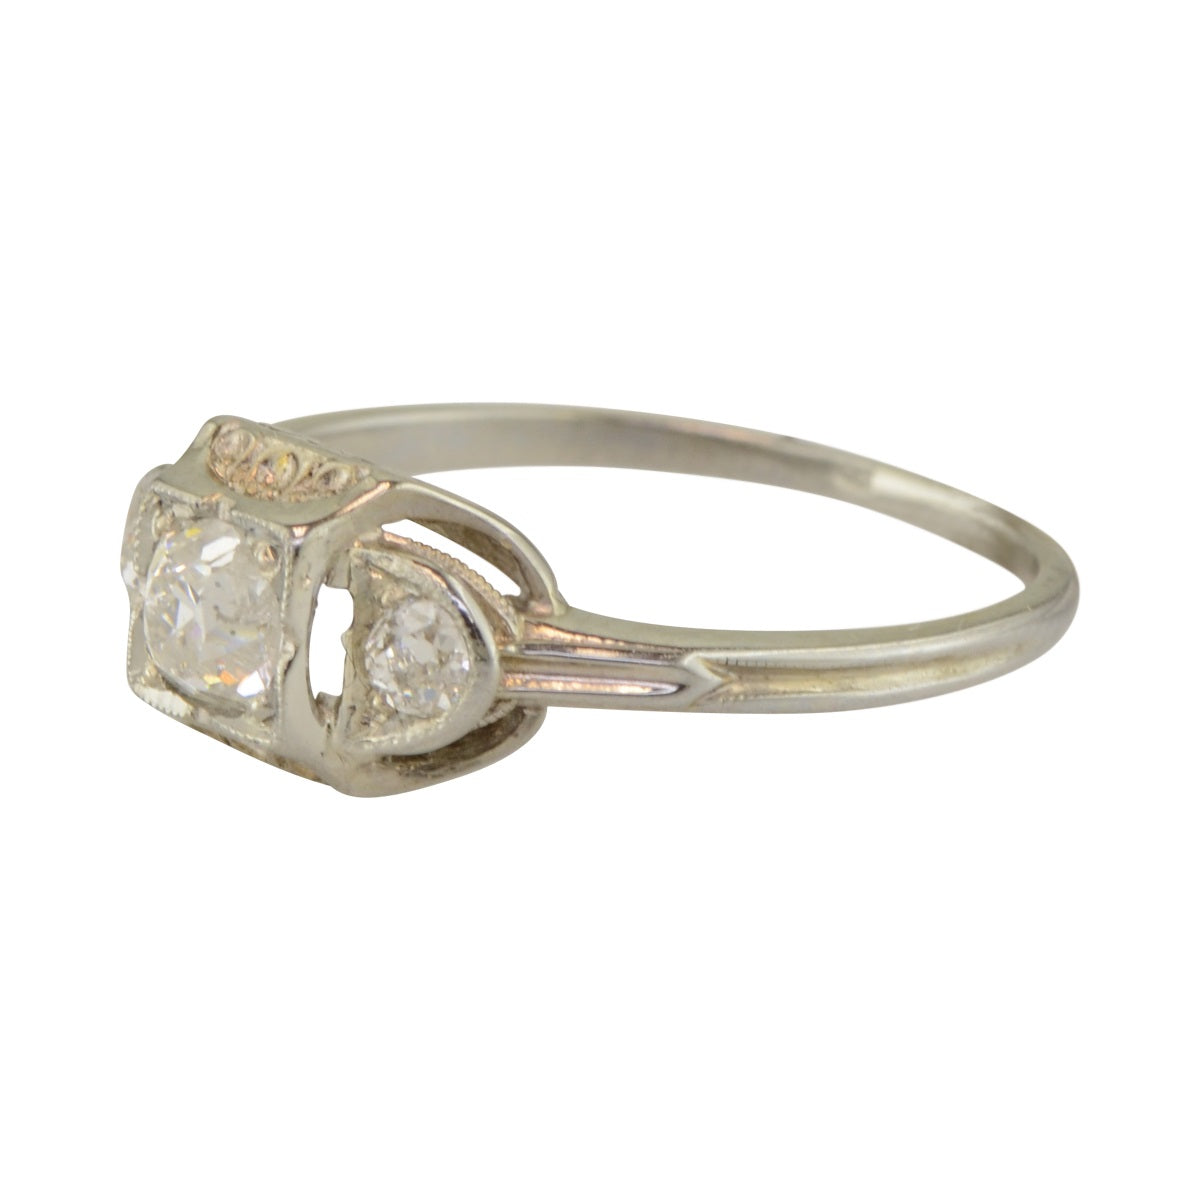 Origional Art Deco Engagement Ring in White Gold with Diamonds